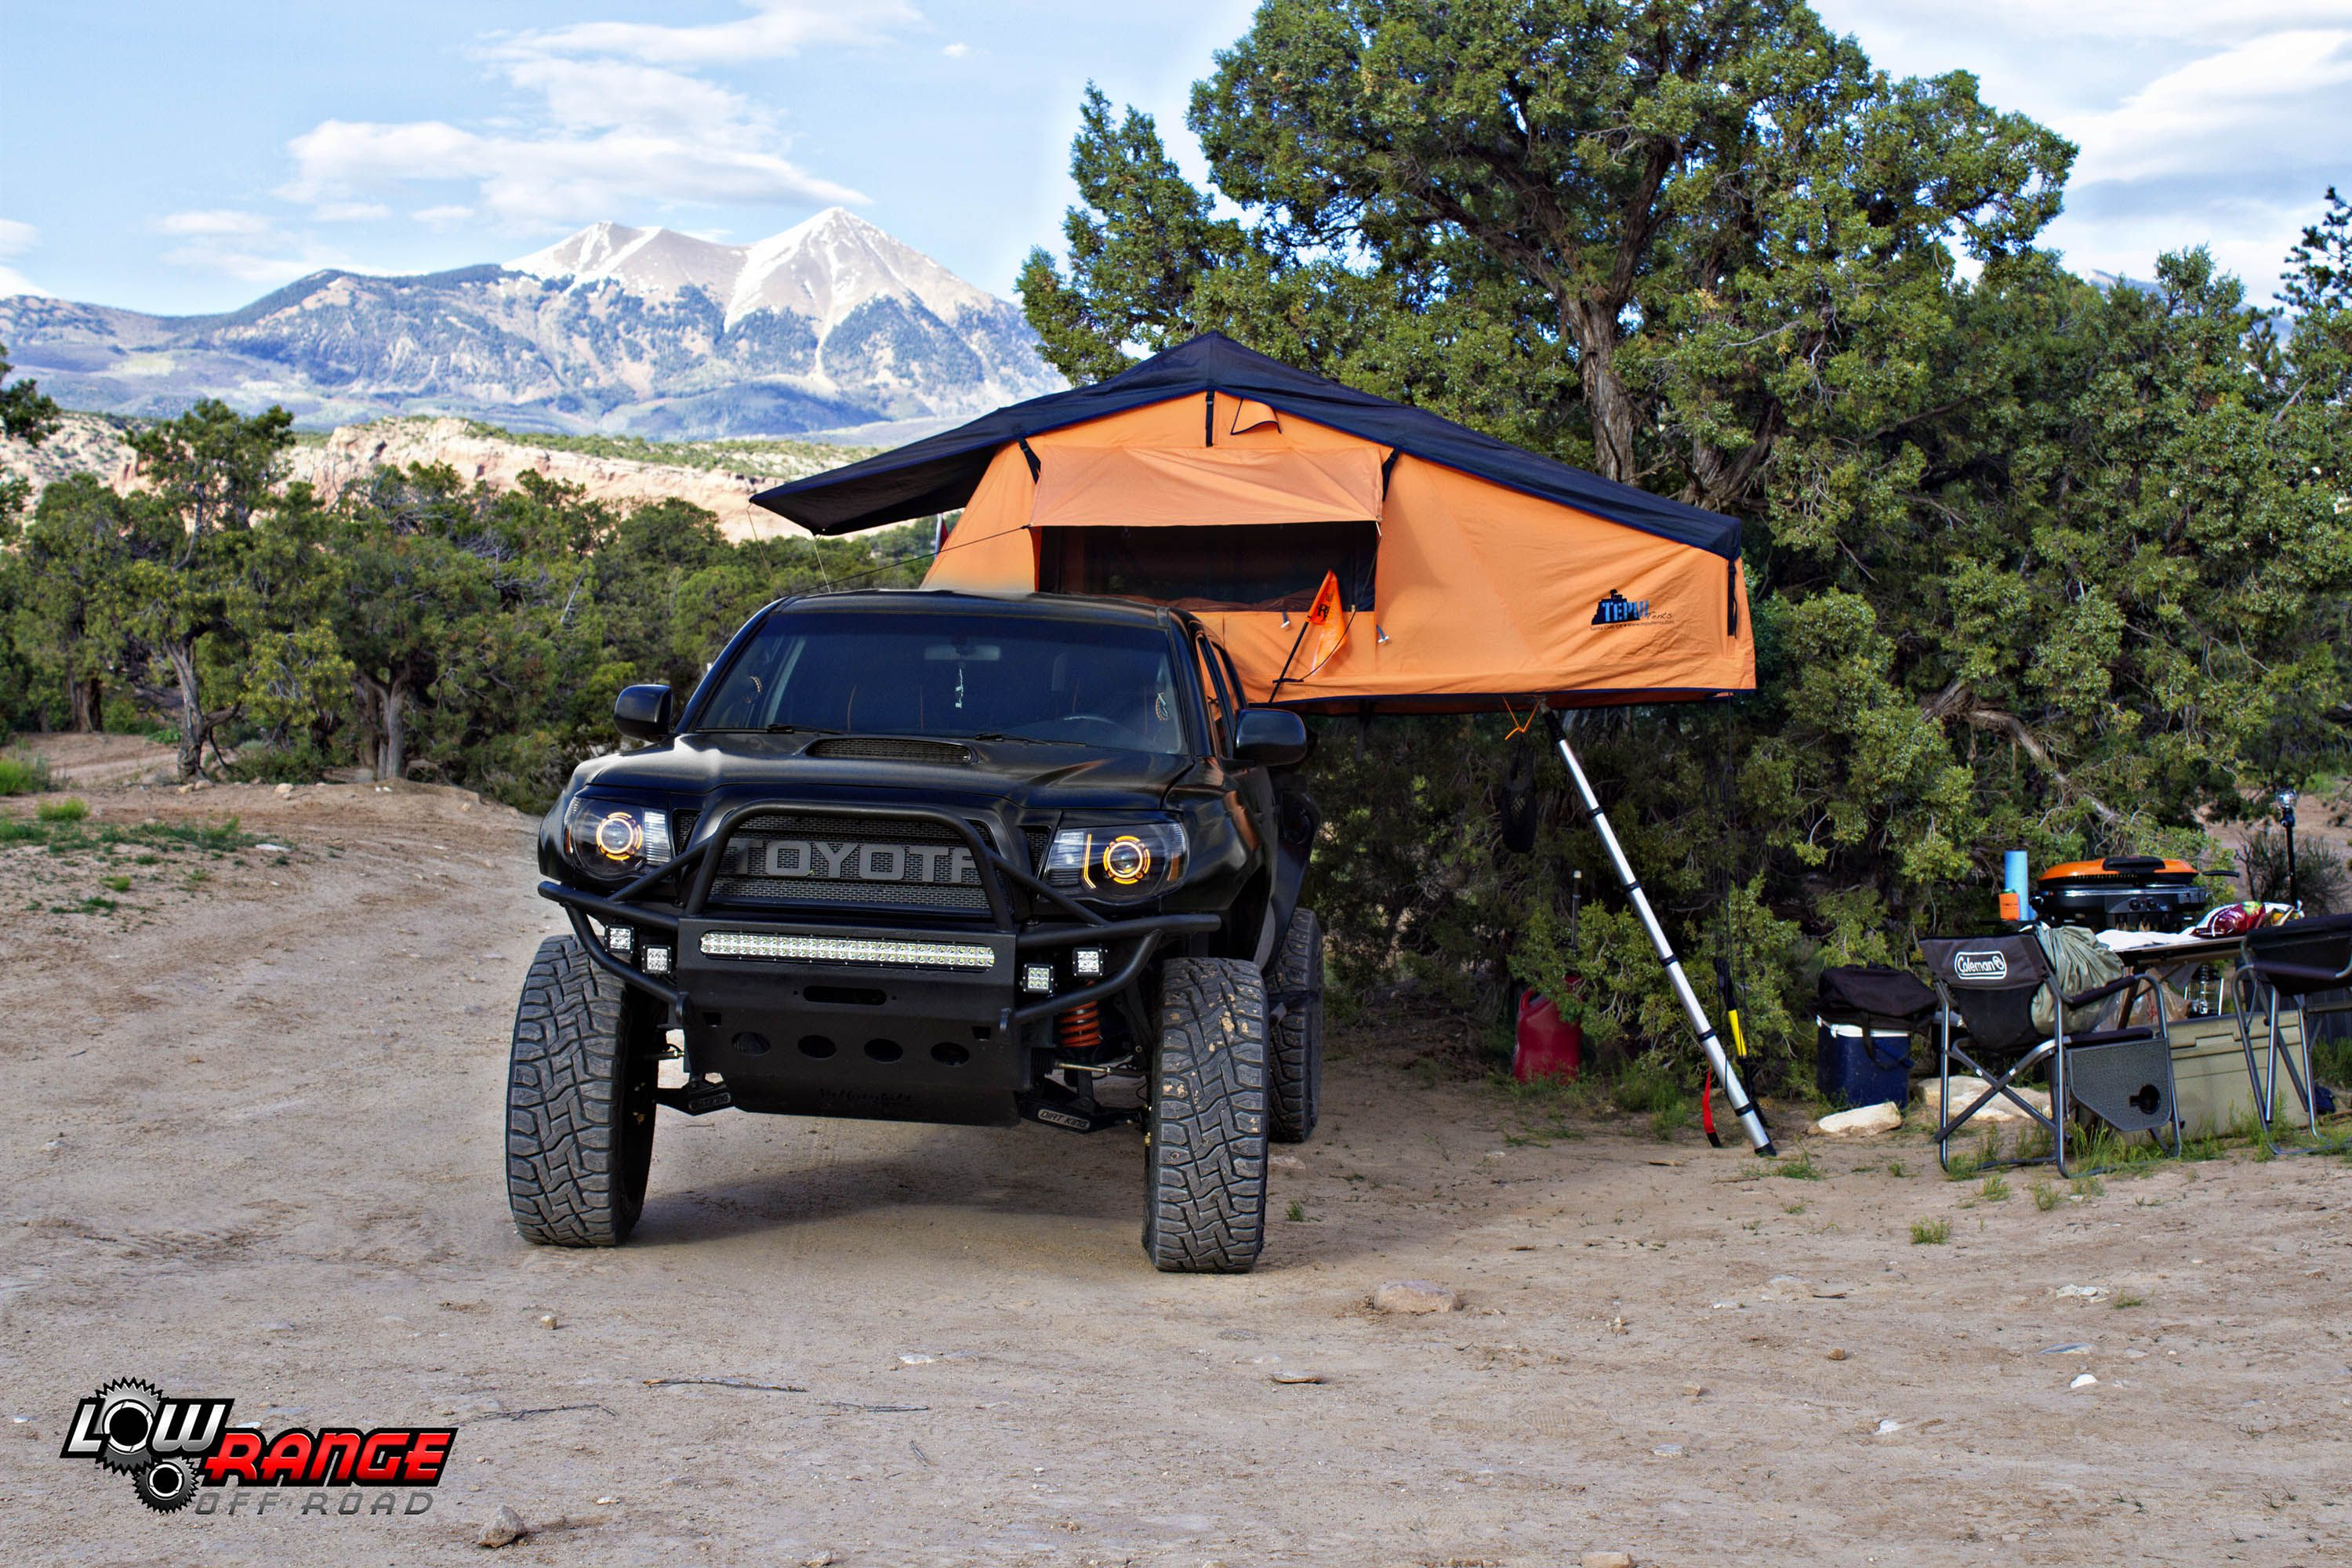 Toyota Tacoma Rooftop Tent Adventure Rig Toyota Tacoma Rooftoptent Adventurerig Expeditionrig Lowrangeoffroad Roof Top Tent Toyota Tacoma Toyota 4x4